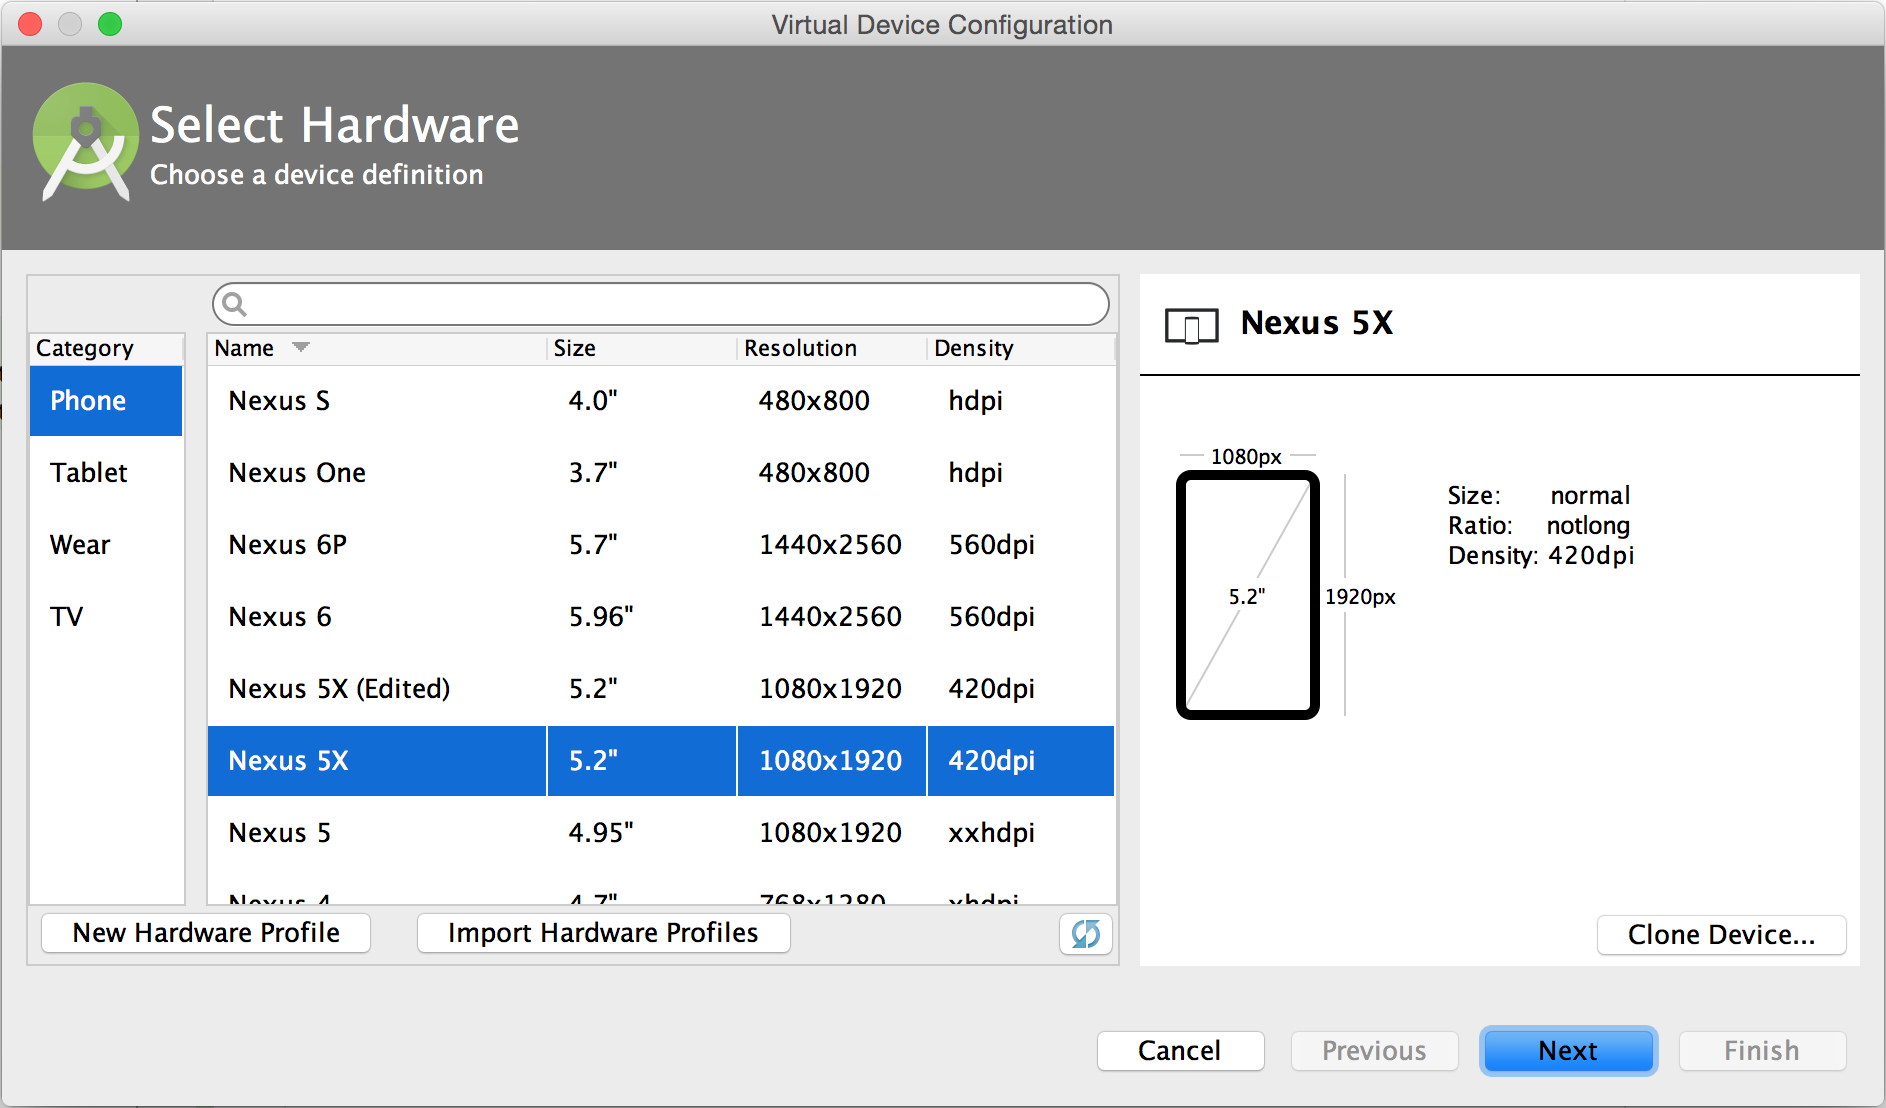 Hardware Profile page of the AVD Manager